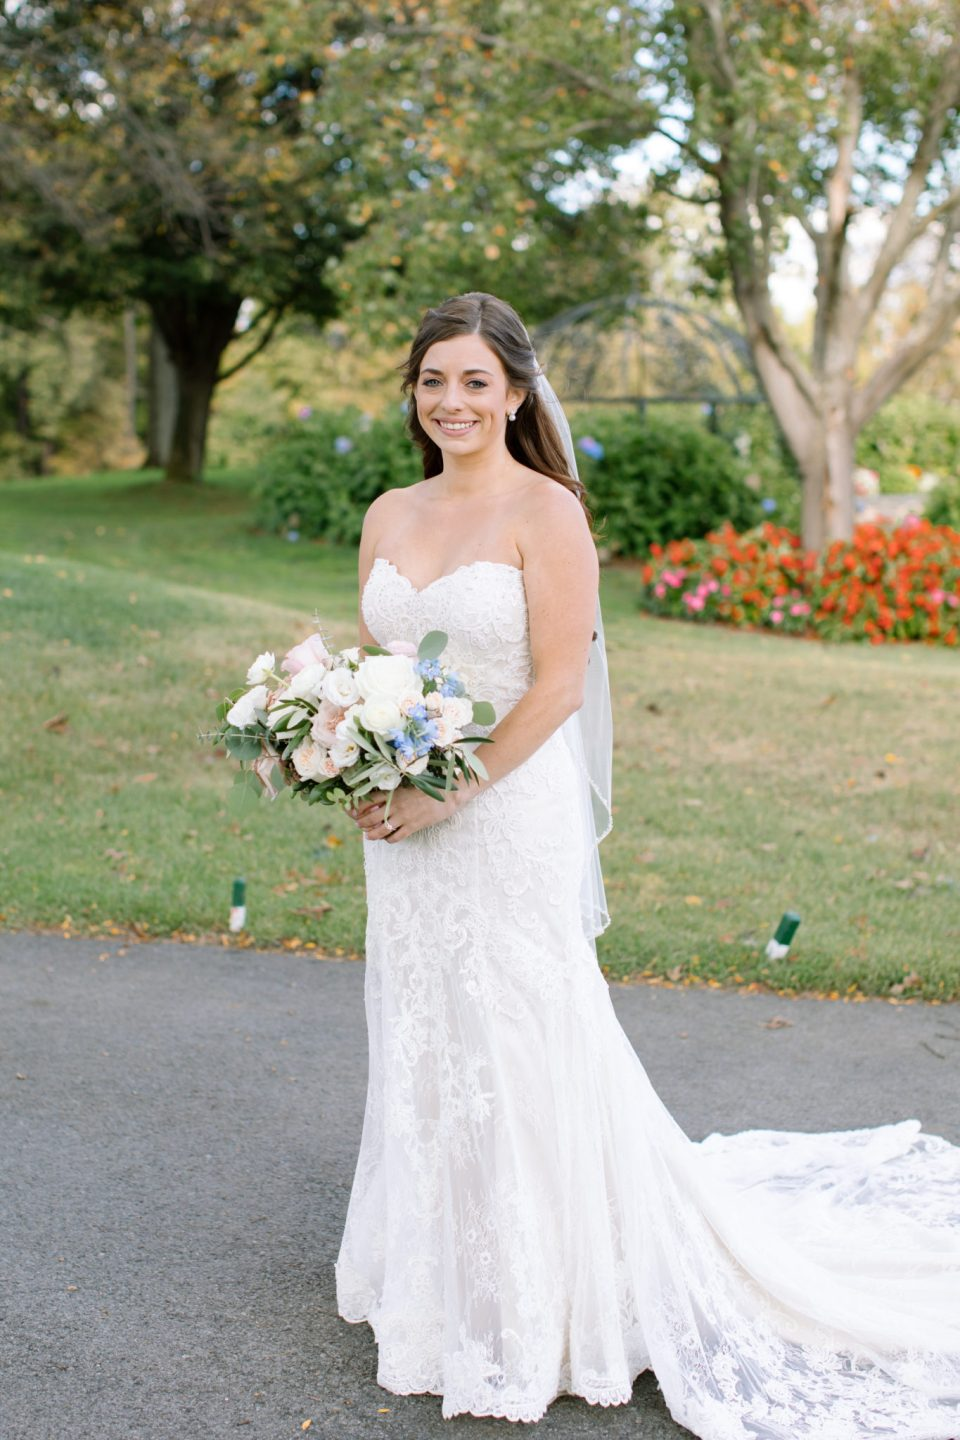 bridal portraits at West Hills Country Club photographed by Ashley Mac Photographs